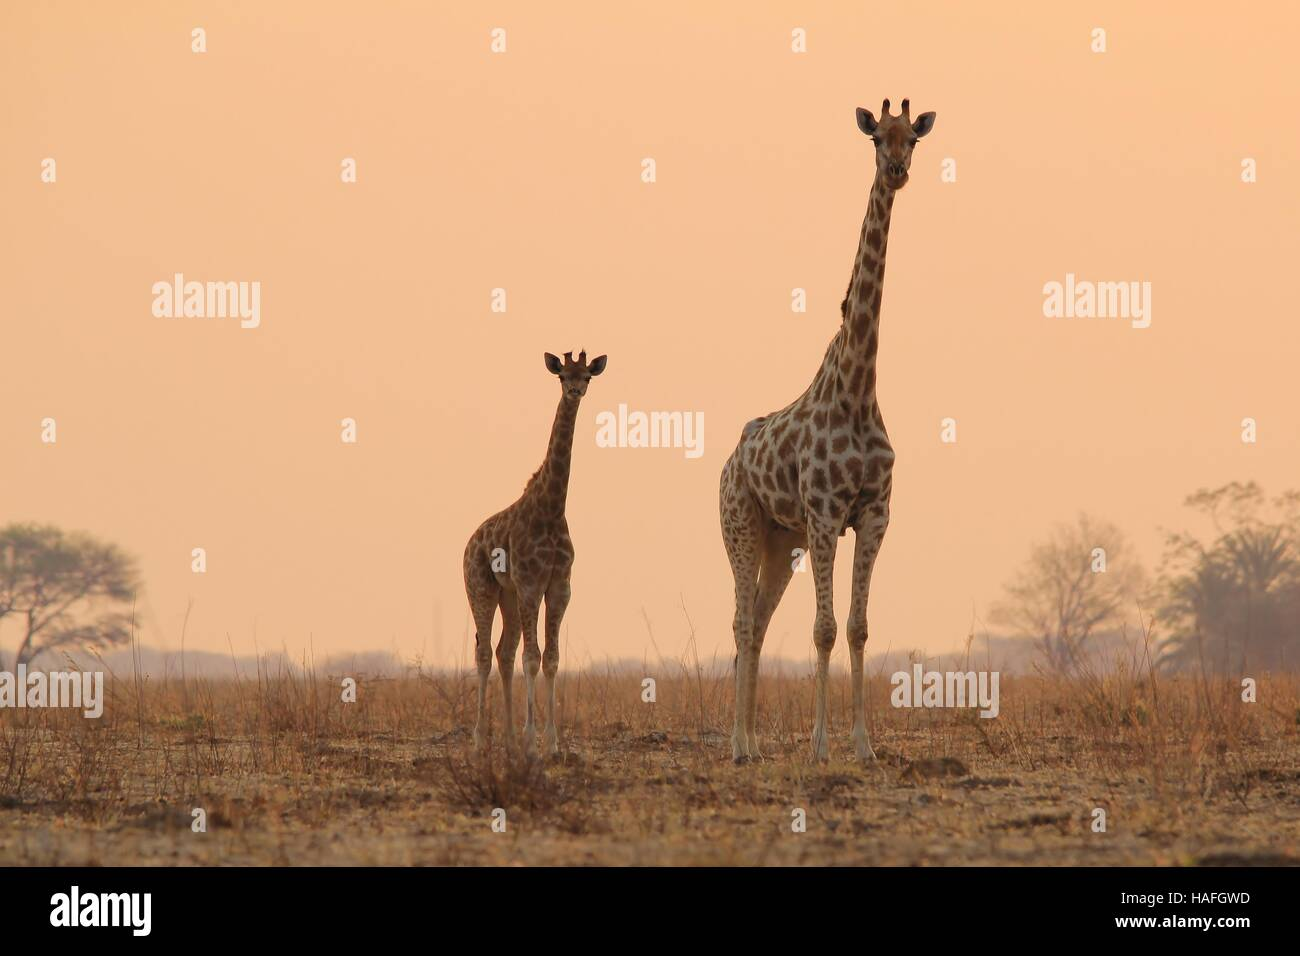 Giraffe - African Wildlife Background - Sunset Bliss of Baby Animals and Animal Moms in the Wild - Stock Image